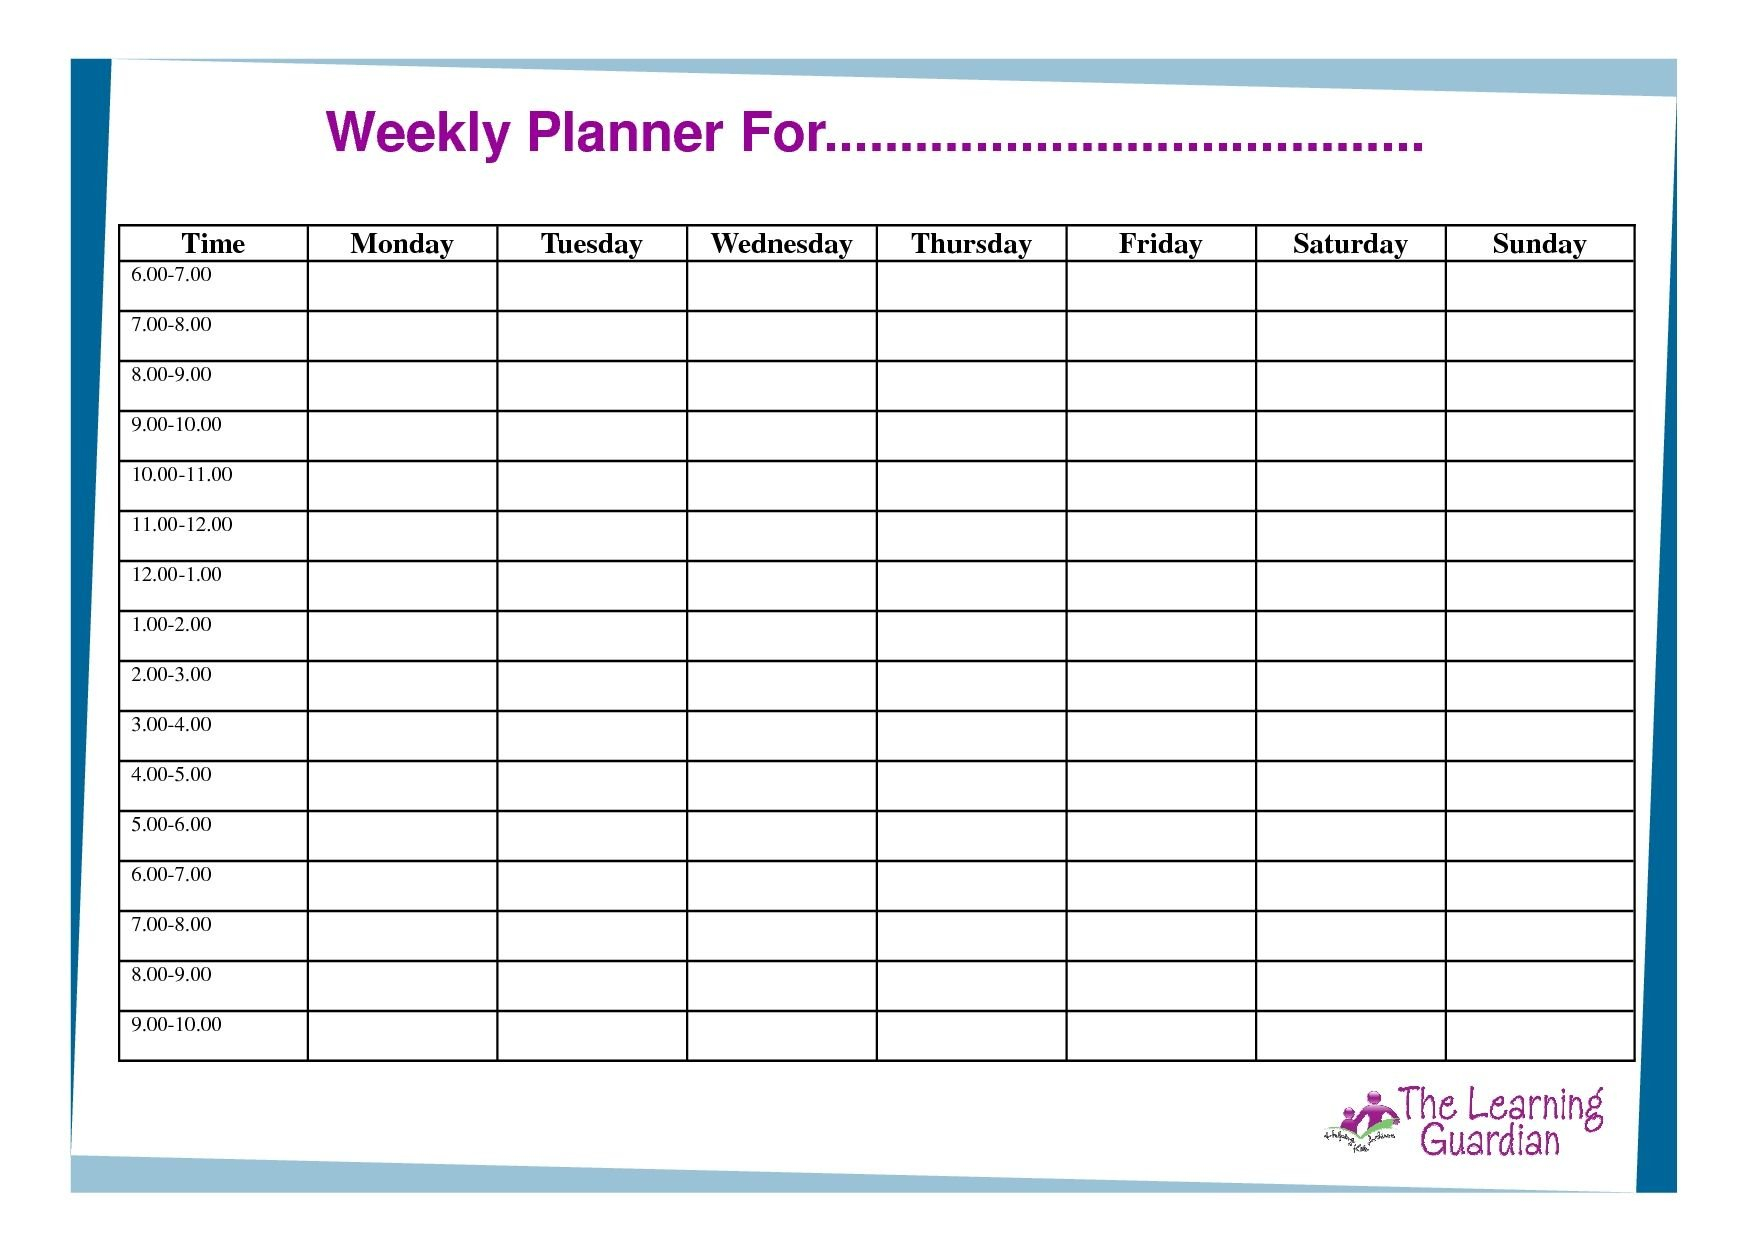 Free Printable Weekly Calendar Templates Weekly Planner One Day Hourly Calendar Free Printable